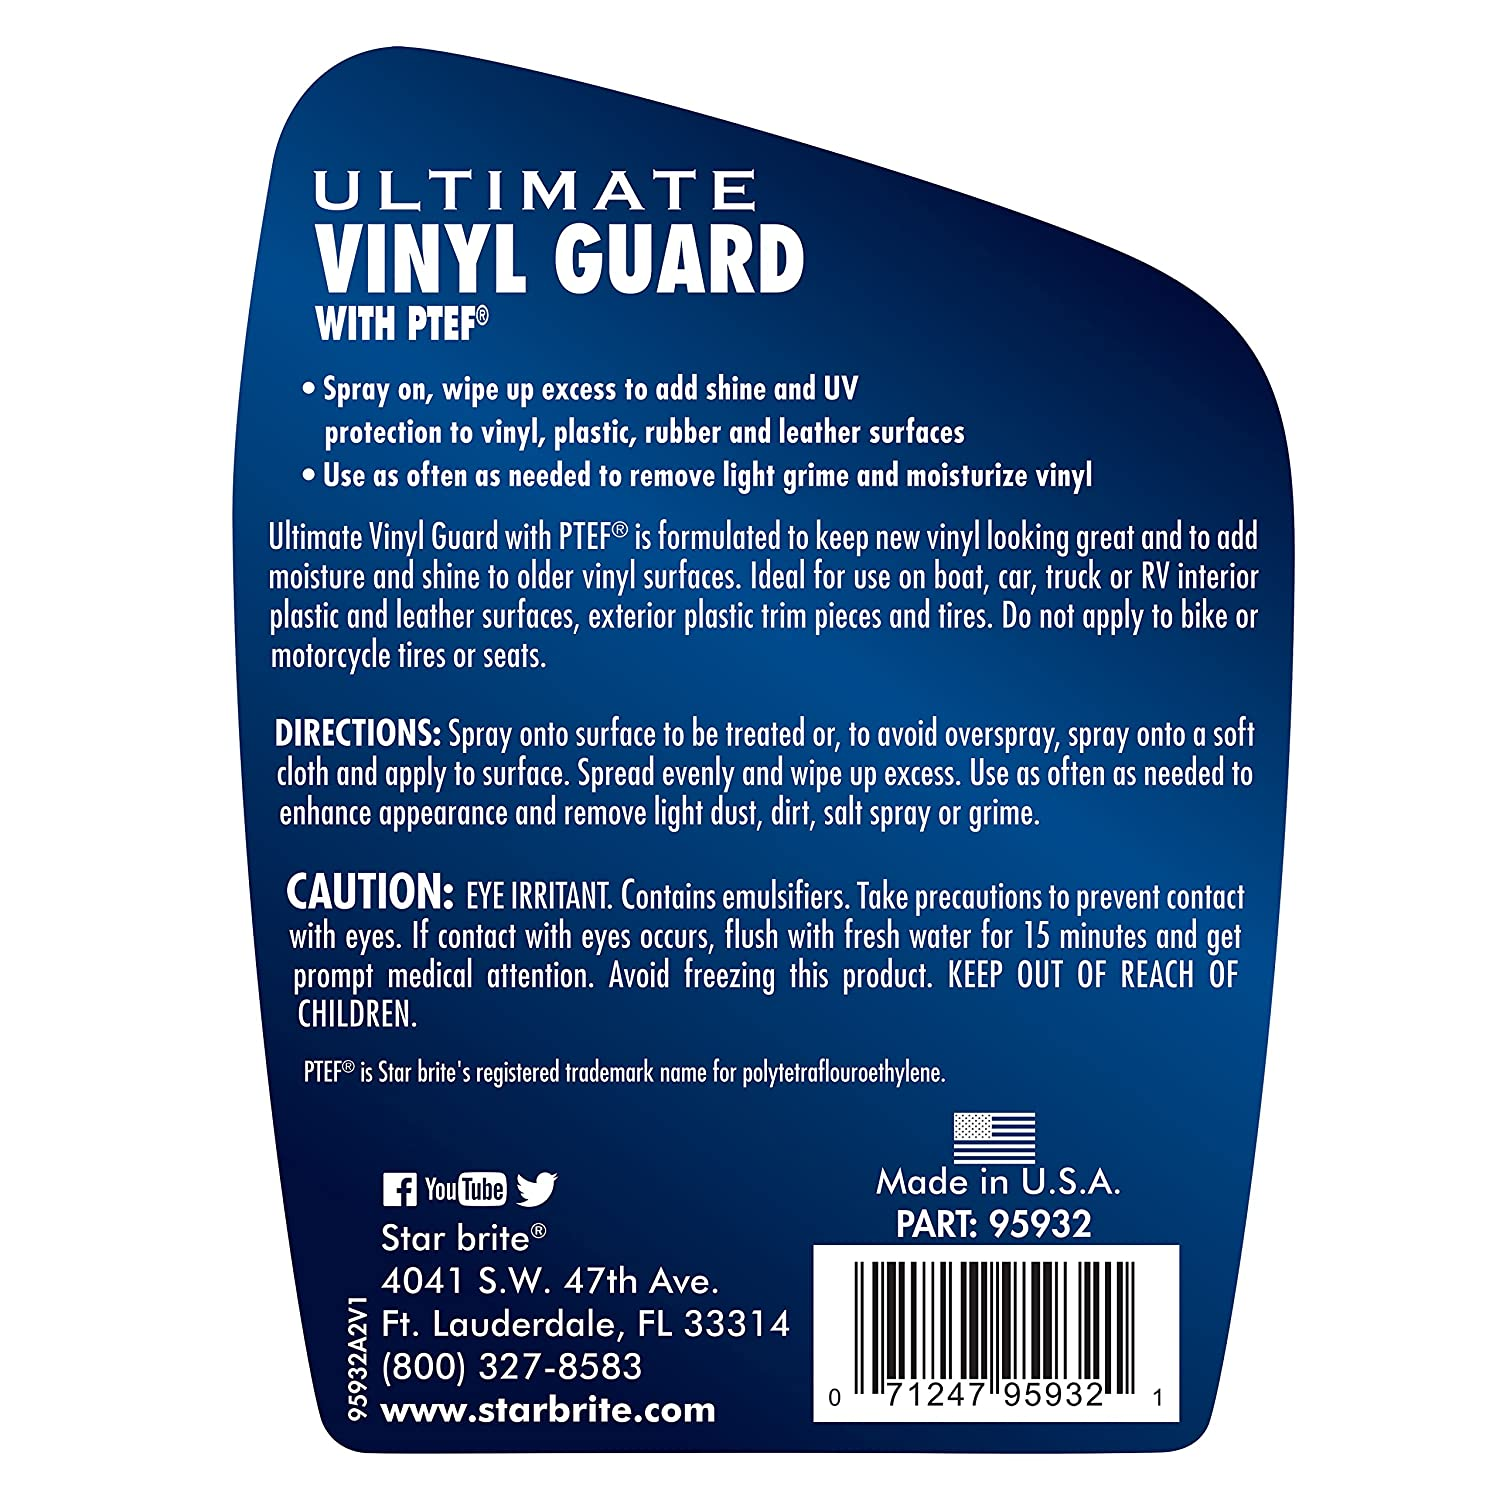 Amazon.com : Star brite Ultimate Vinyl Guard Protectant with PTEF ...